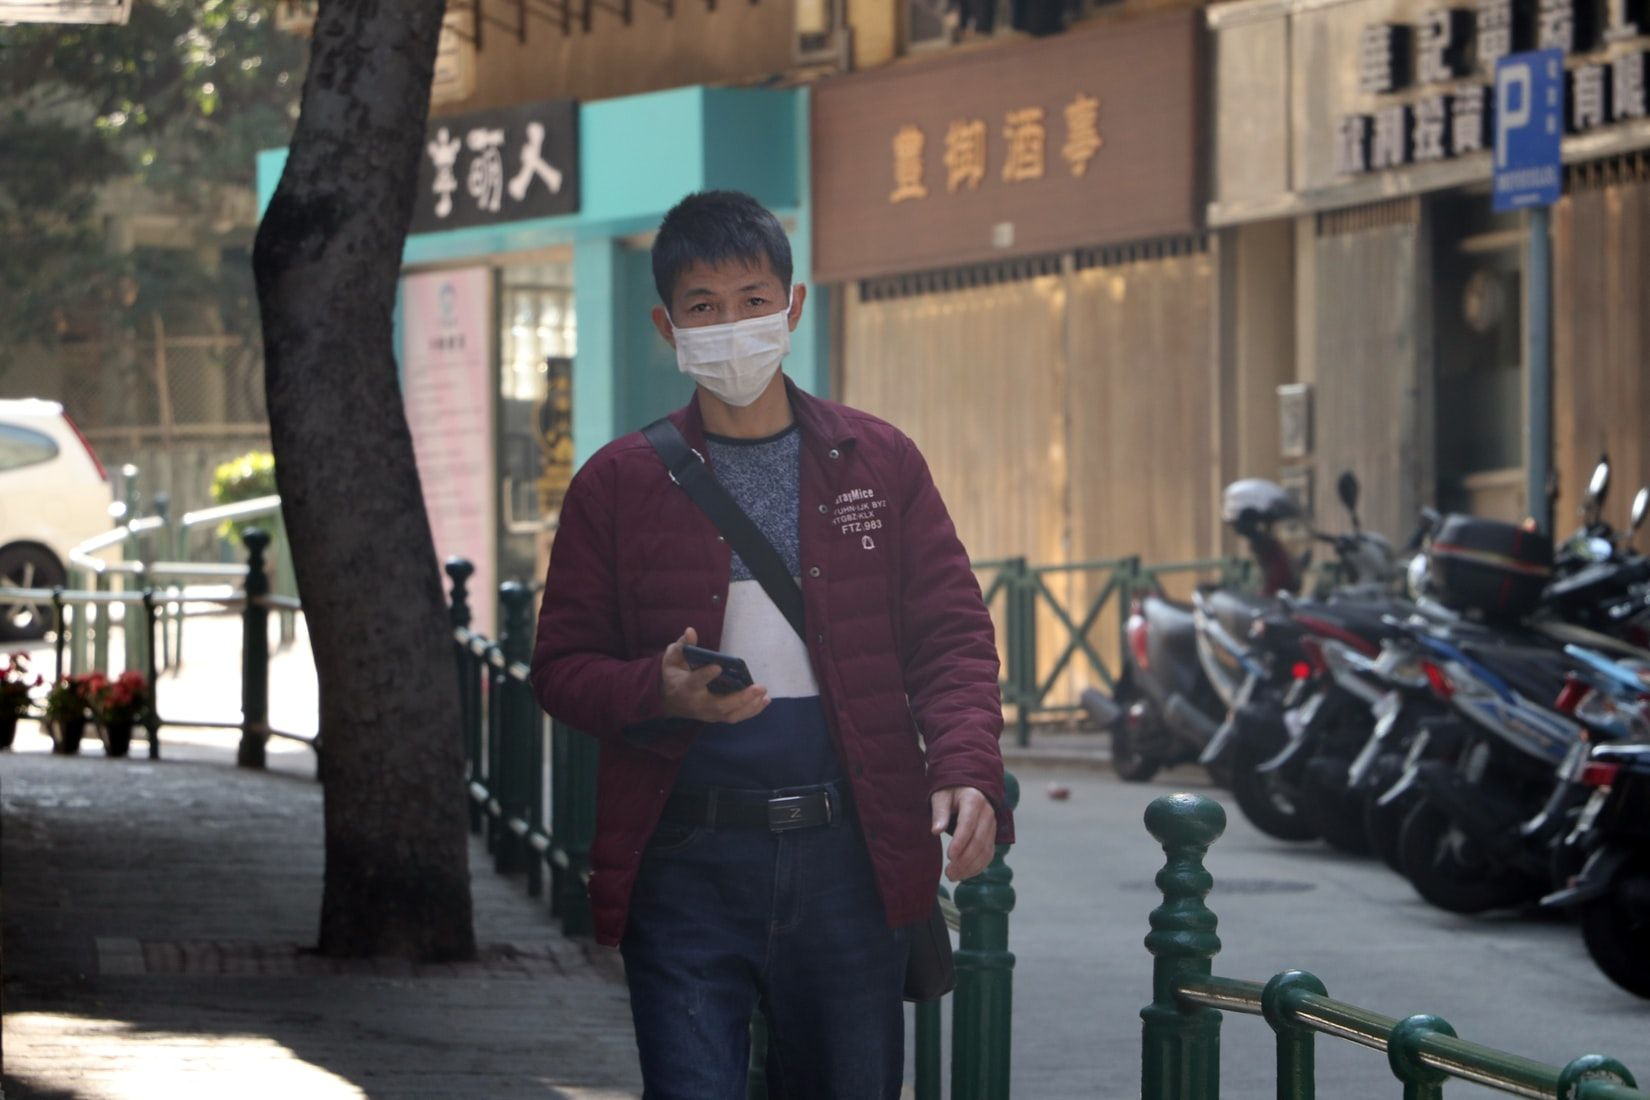 Man wearing mask to protect against the coronavirus outbreak